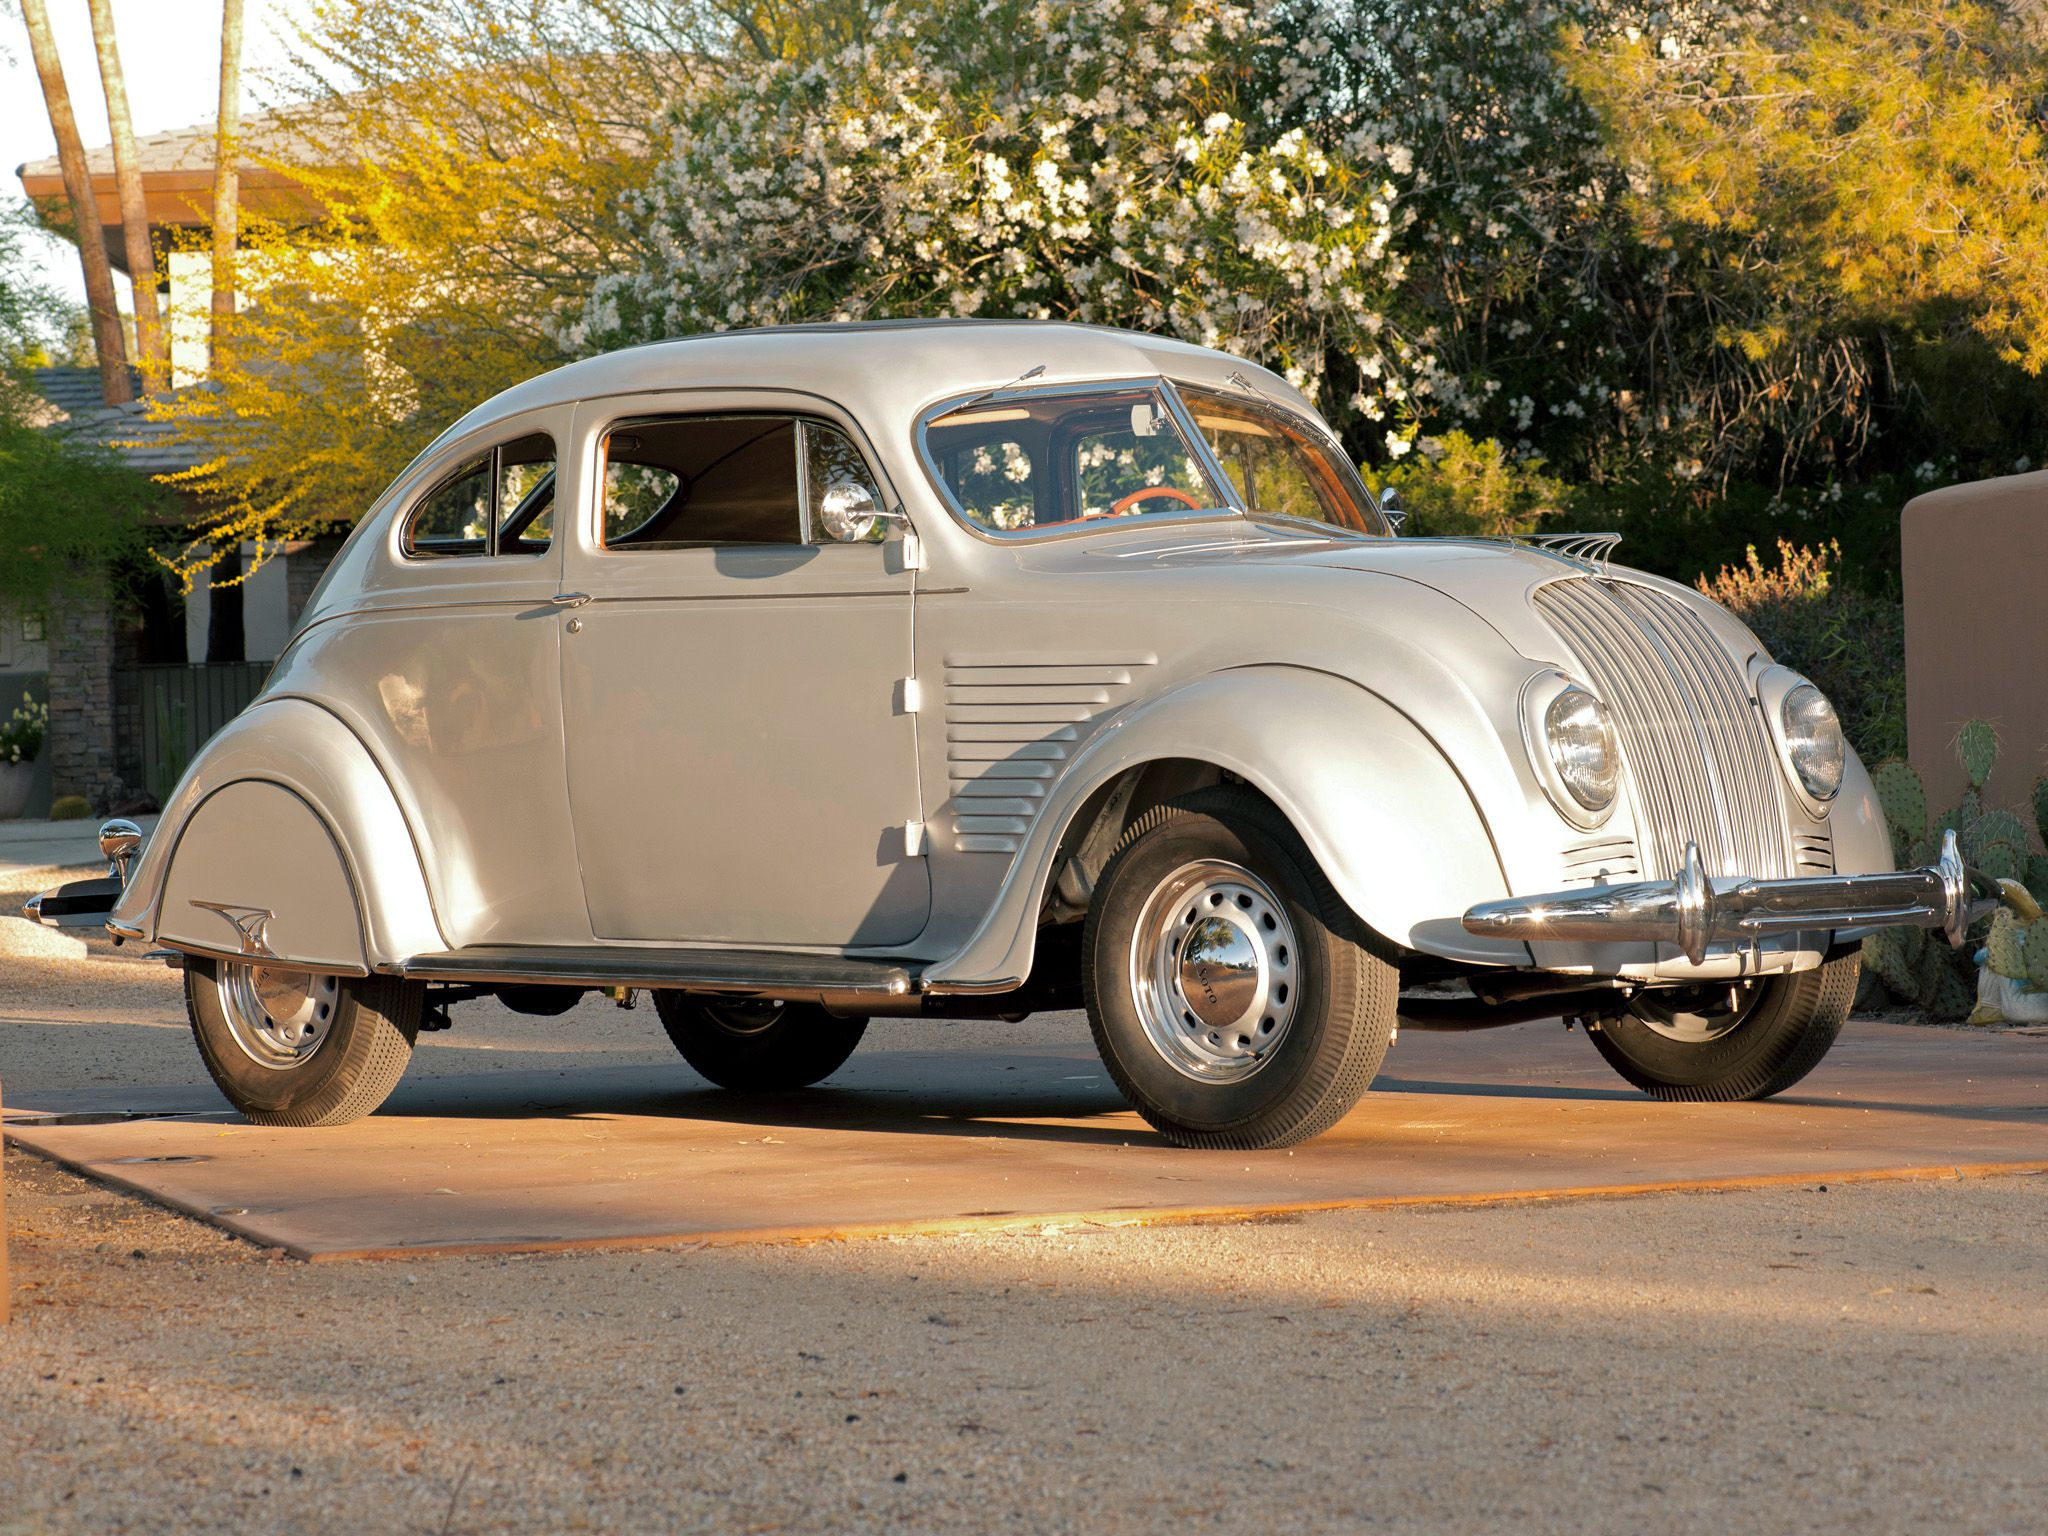 1934 DeSoto Airflow Coupe (SE) Maintenance of old vehicles: the ...